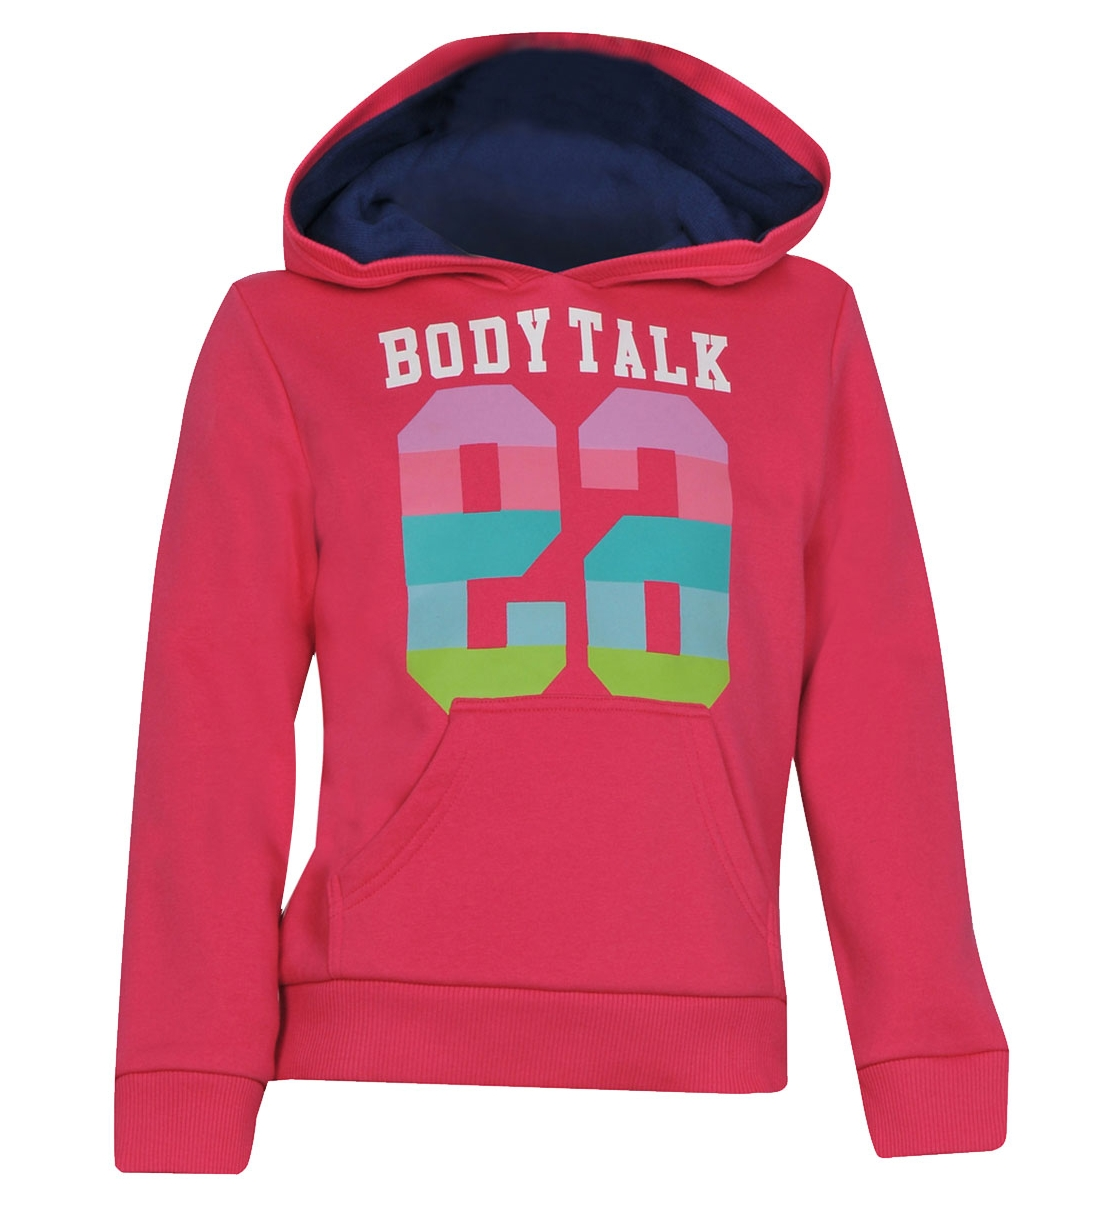 Body Talk Fw15 Colorsg Hood Sweater